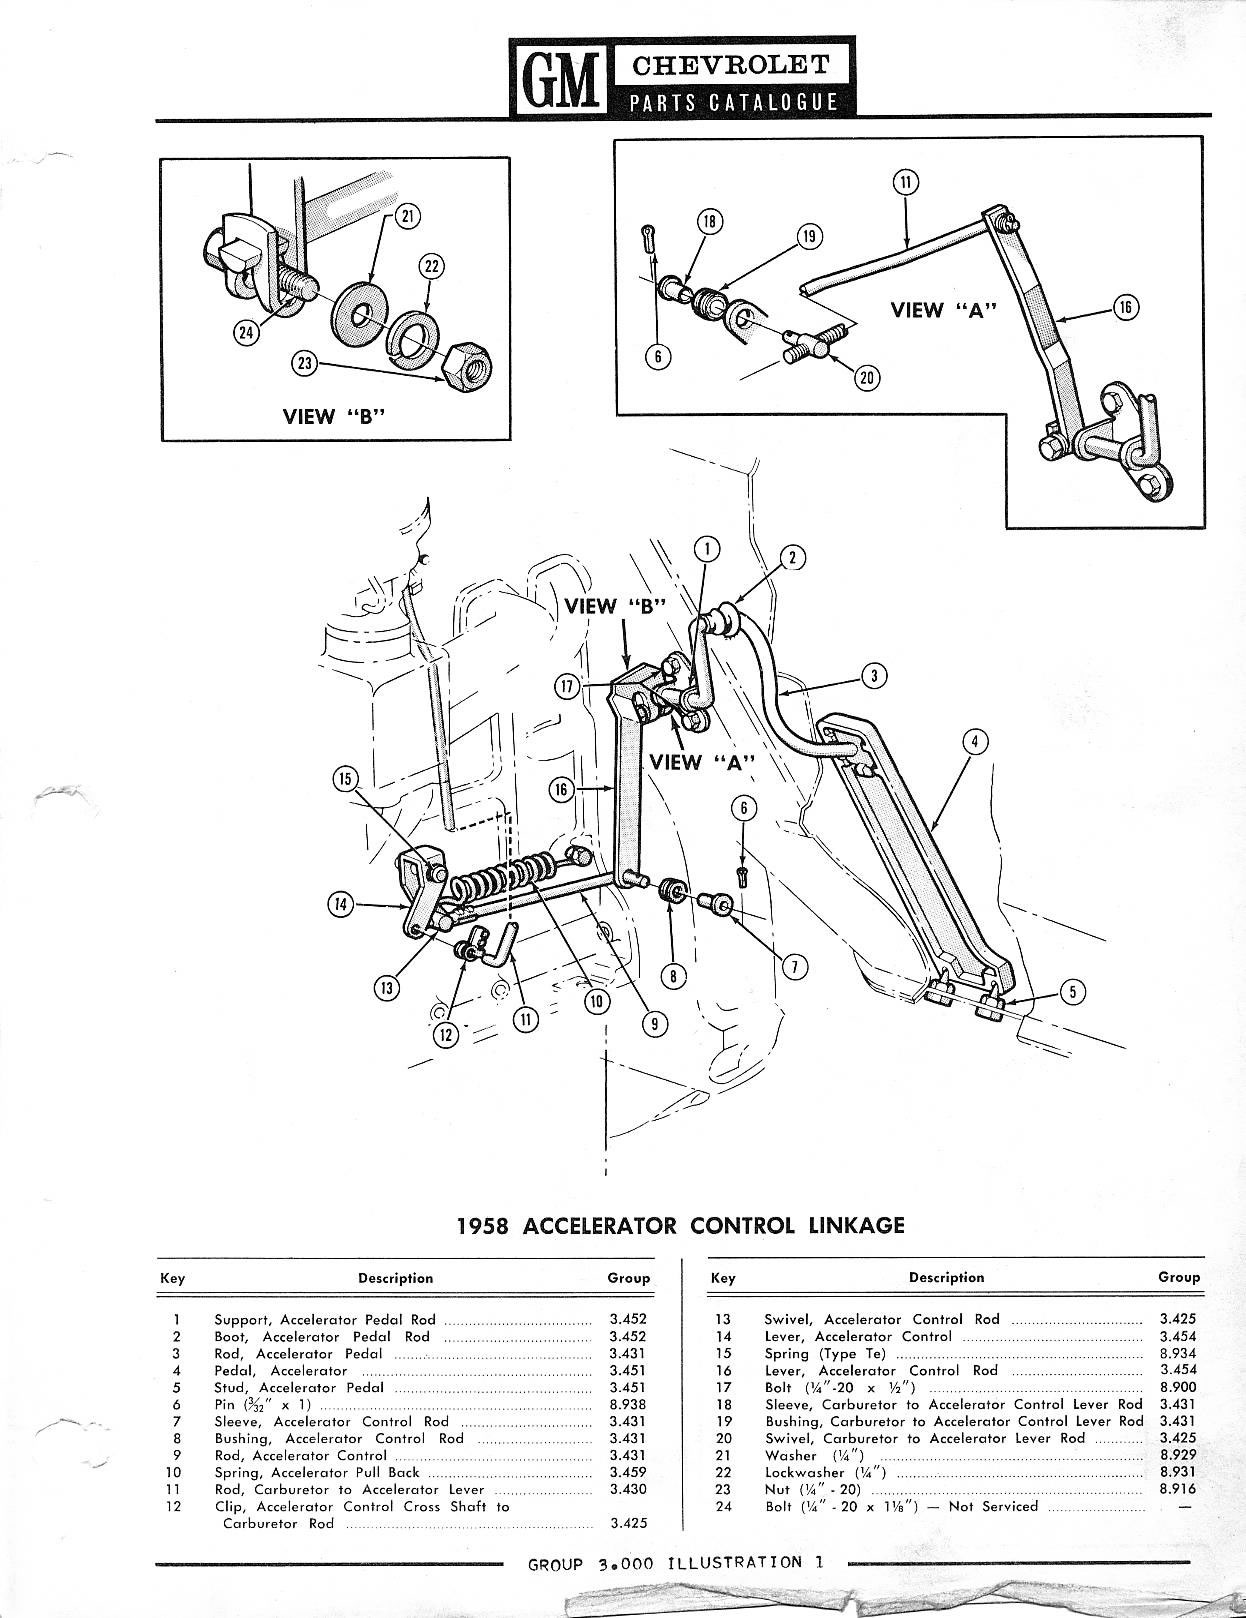 1946 chevy pickup parts catalog